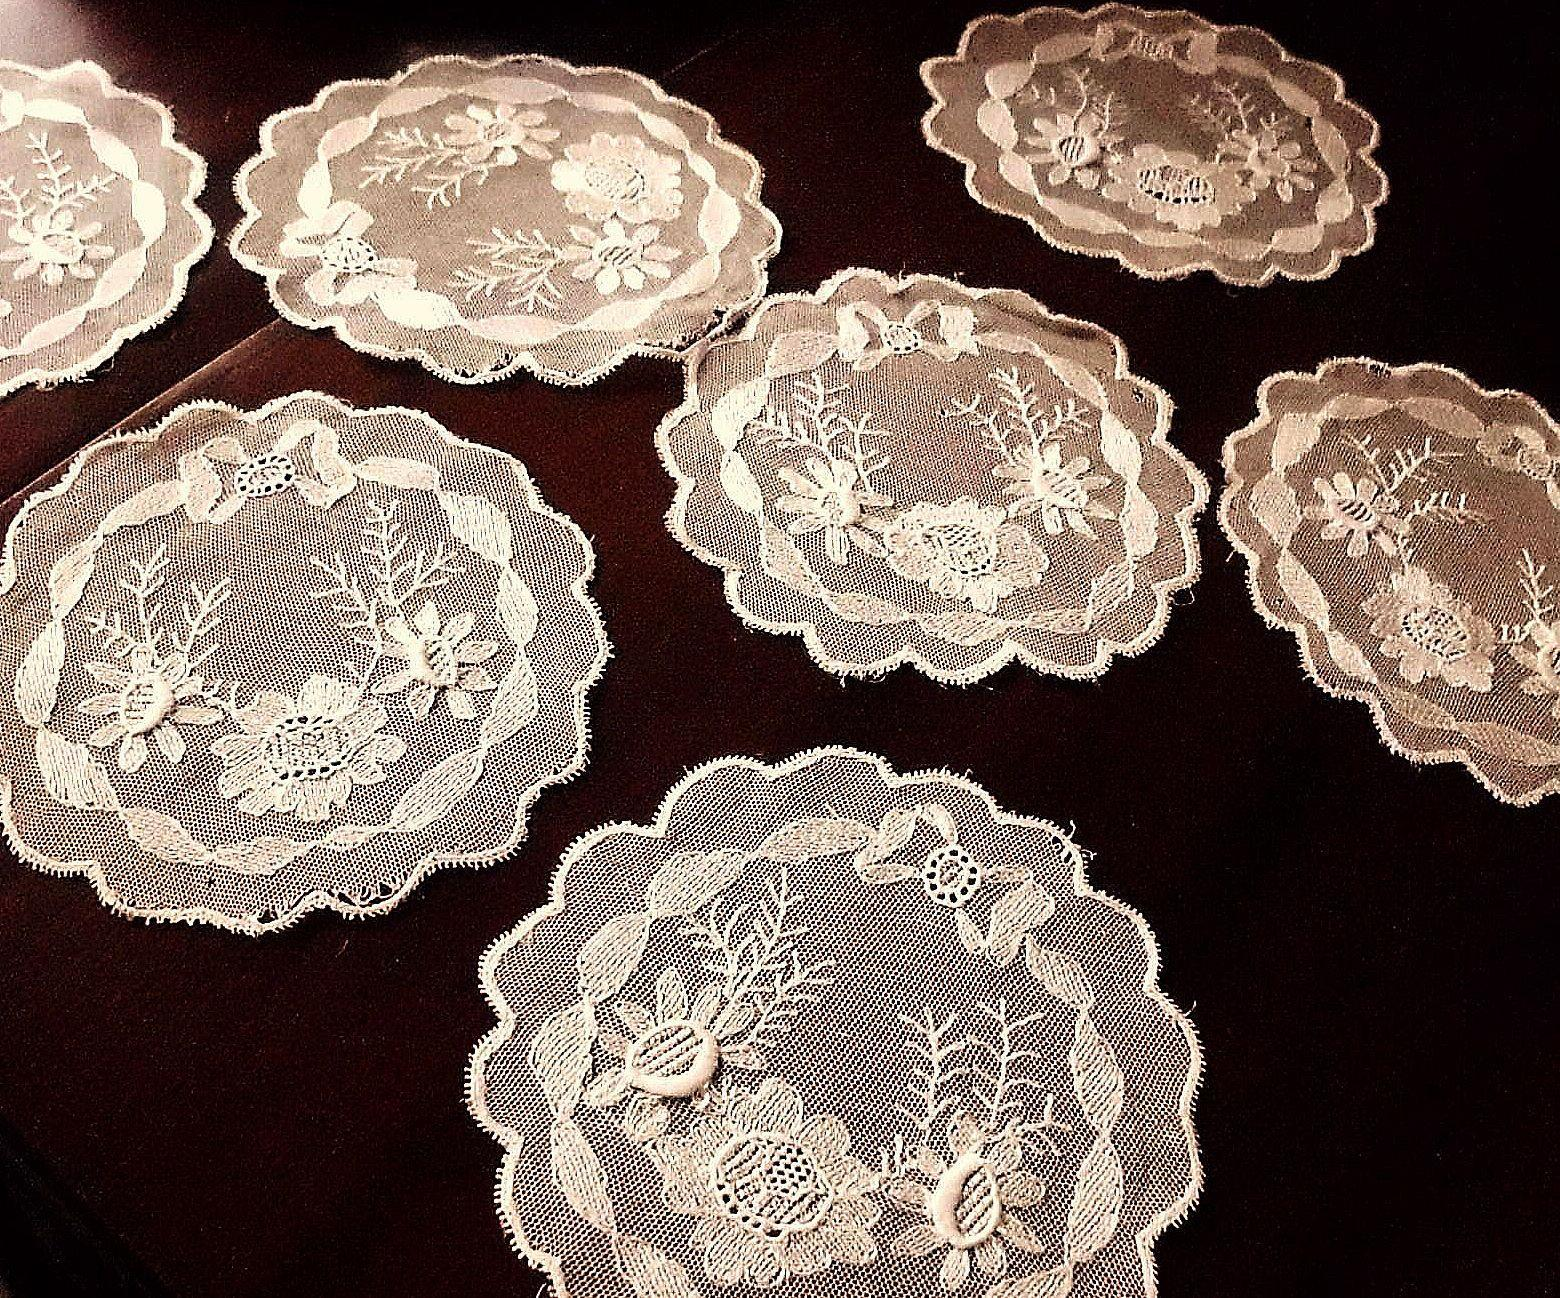 7 Blond or Light Ecru Silk Net Lace Doily for Projects, Sewing, AS IS